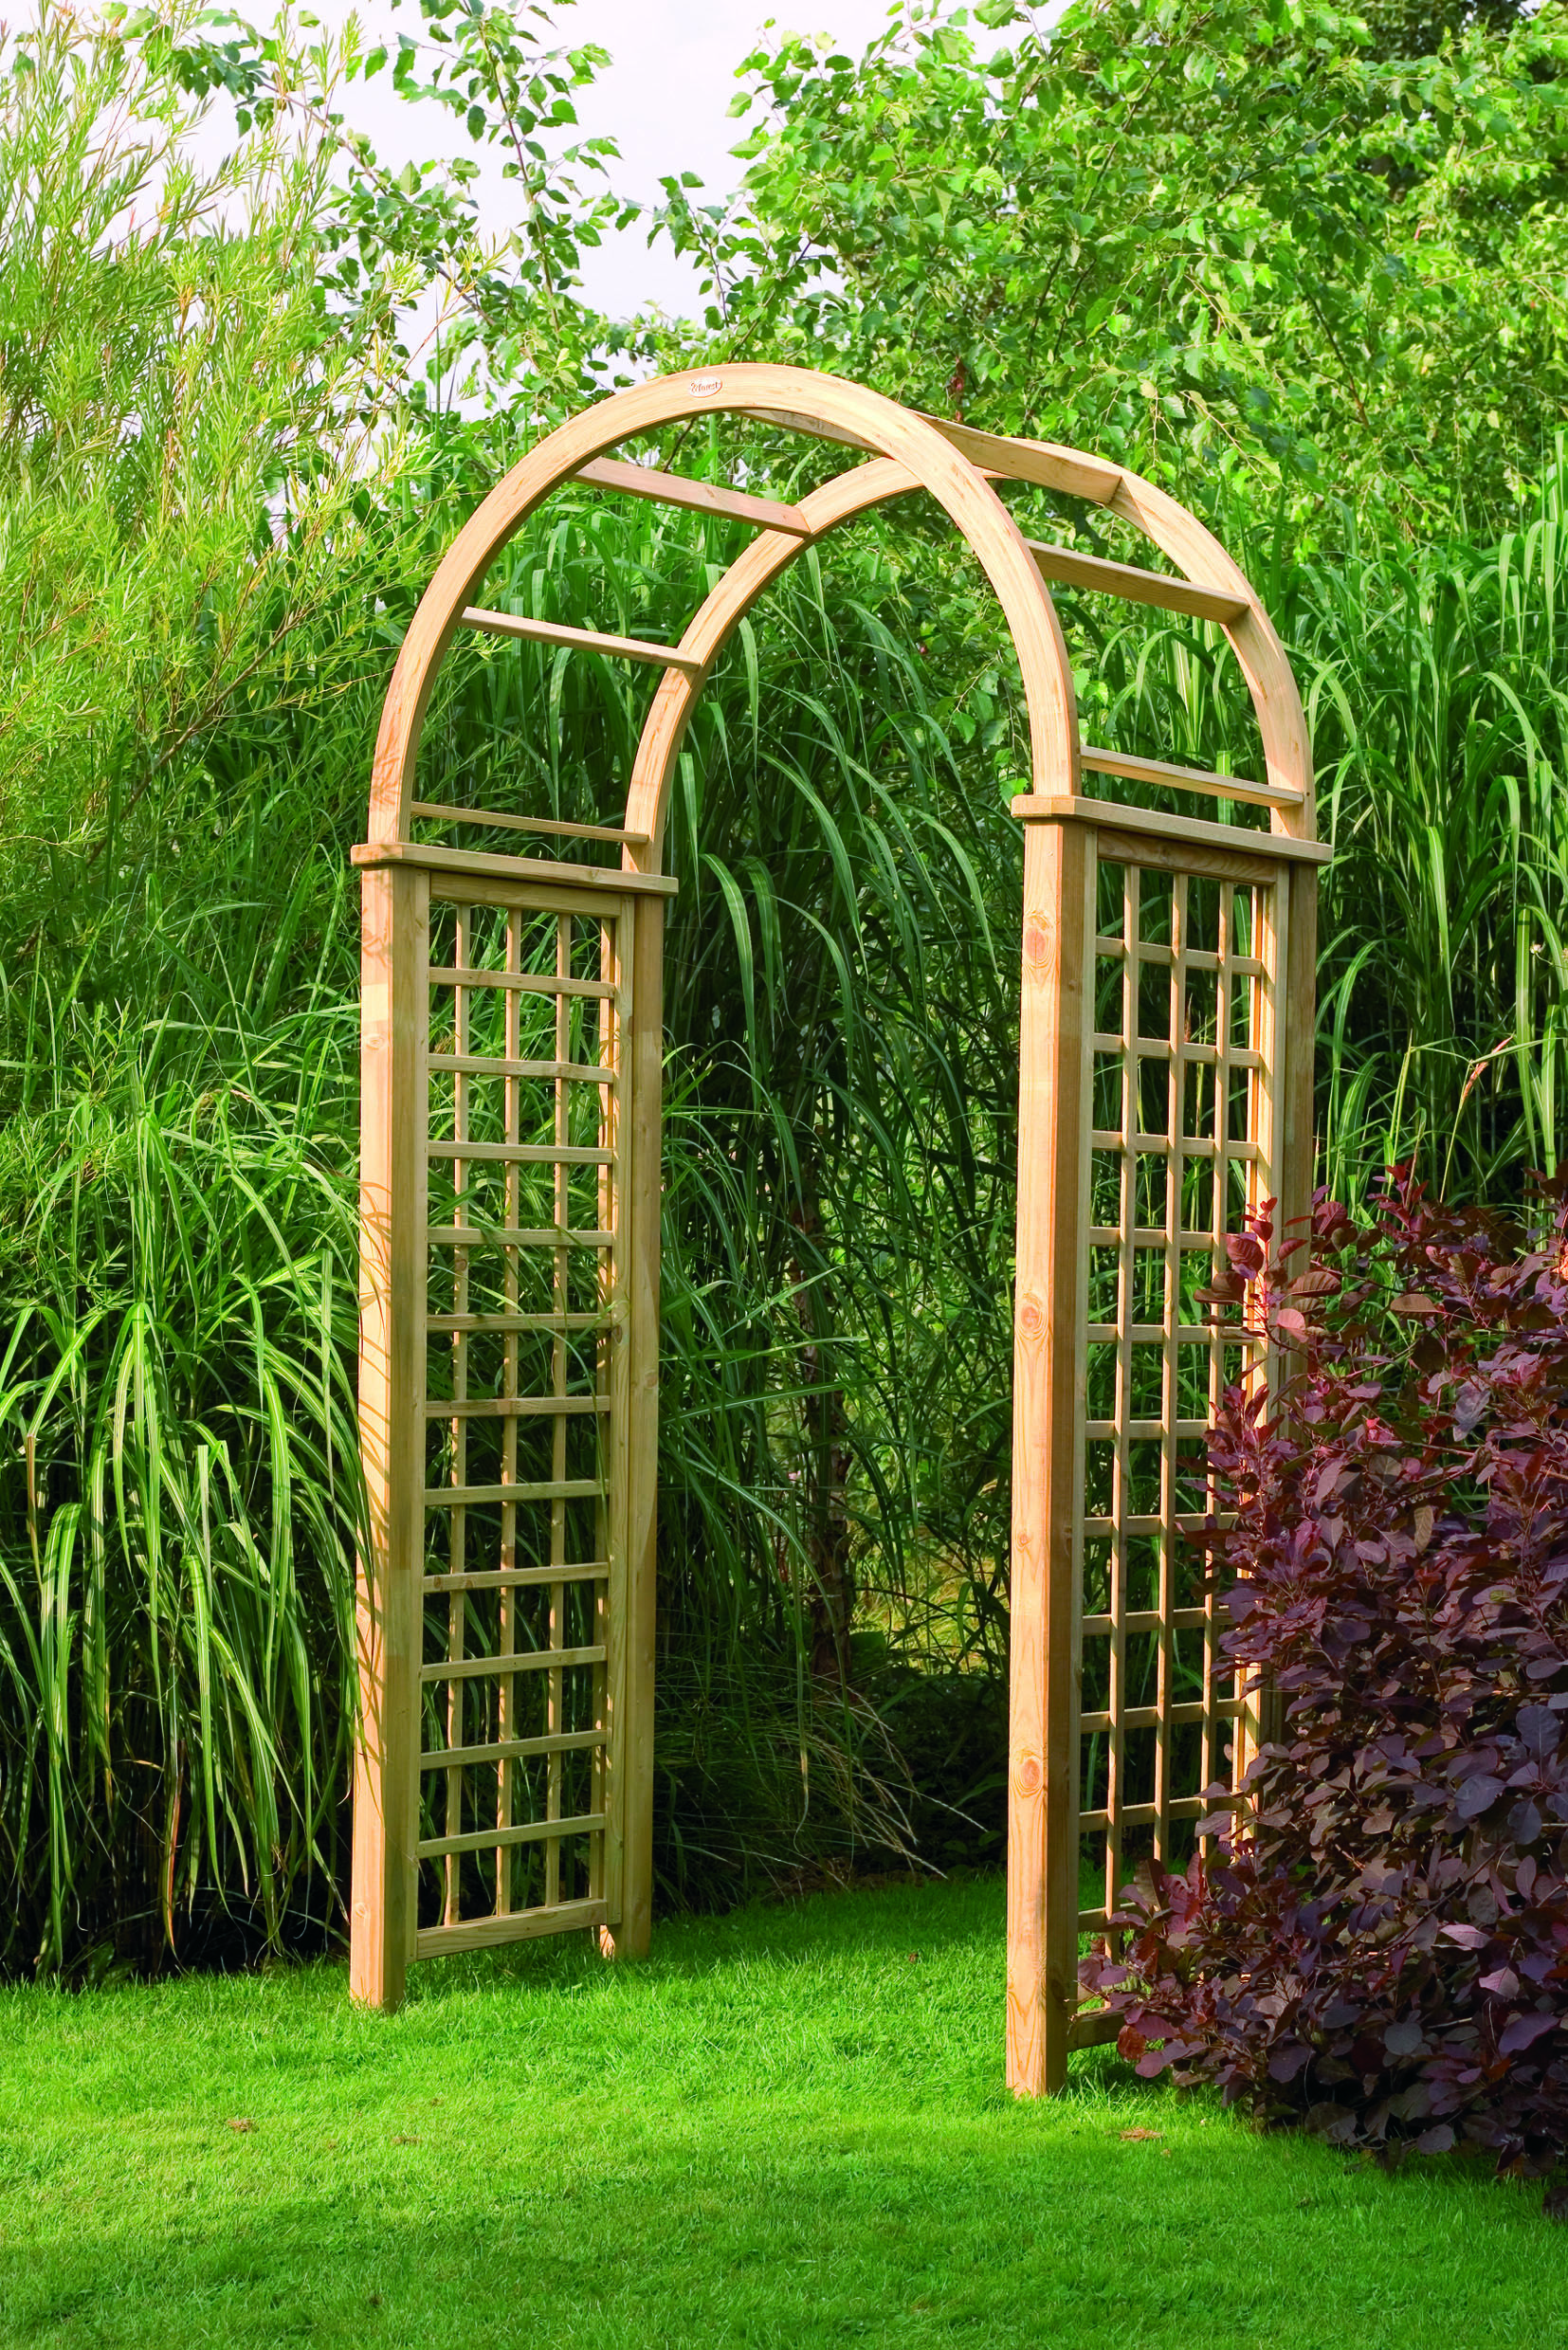 Forest Garden Florence Arch 1420 x 800 x 3010 | Garden arches, Dream ...